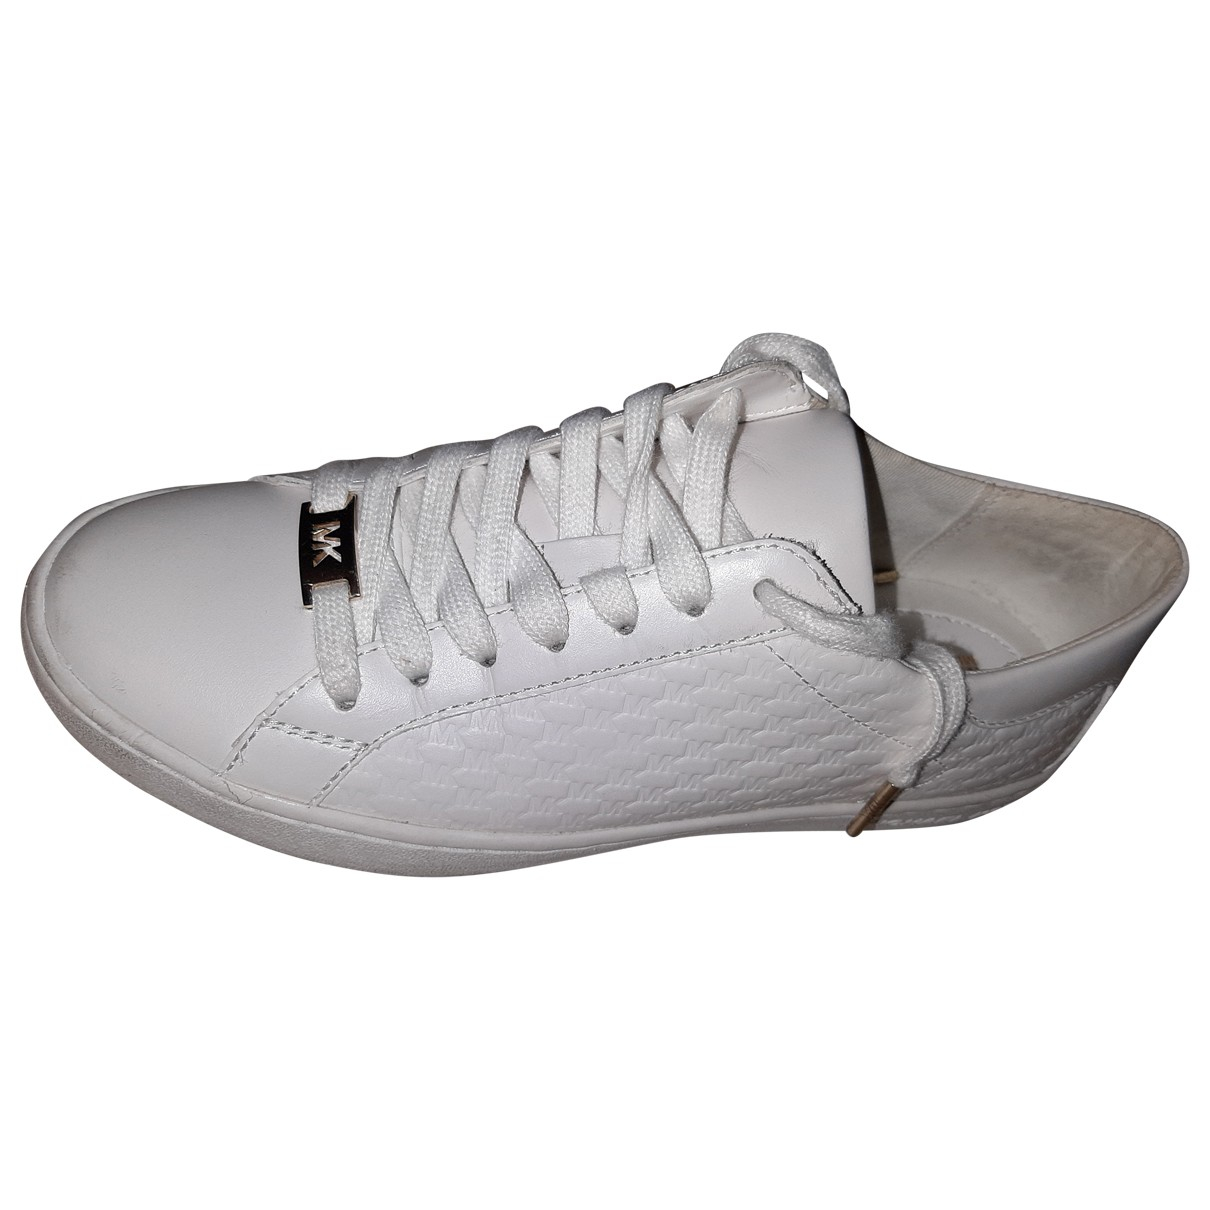 Michael Kors N White Leather Trainers for Women 37.5 EU